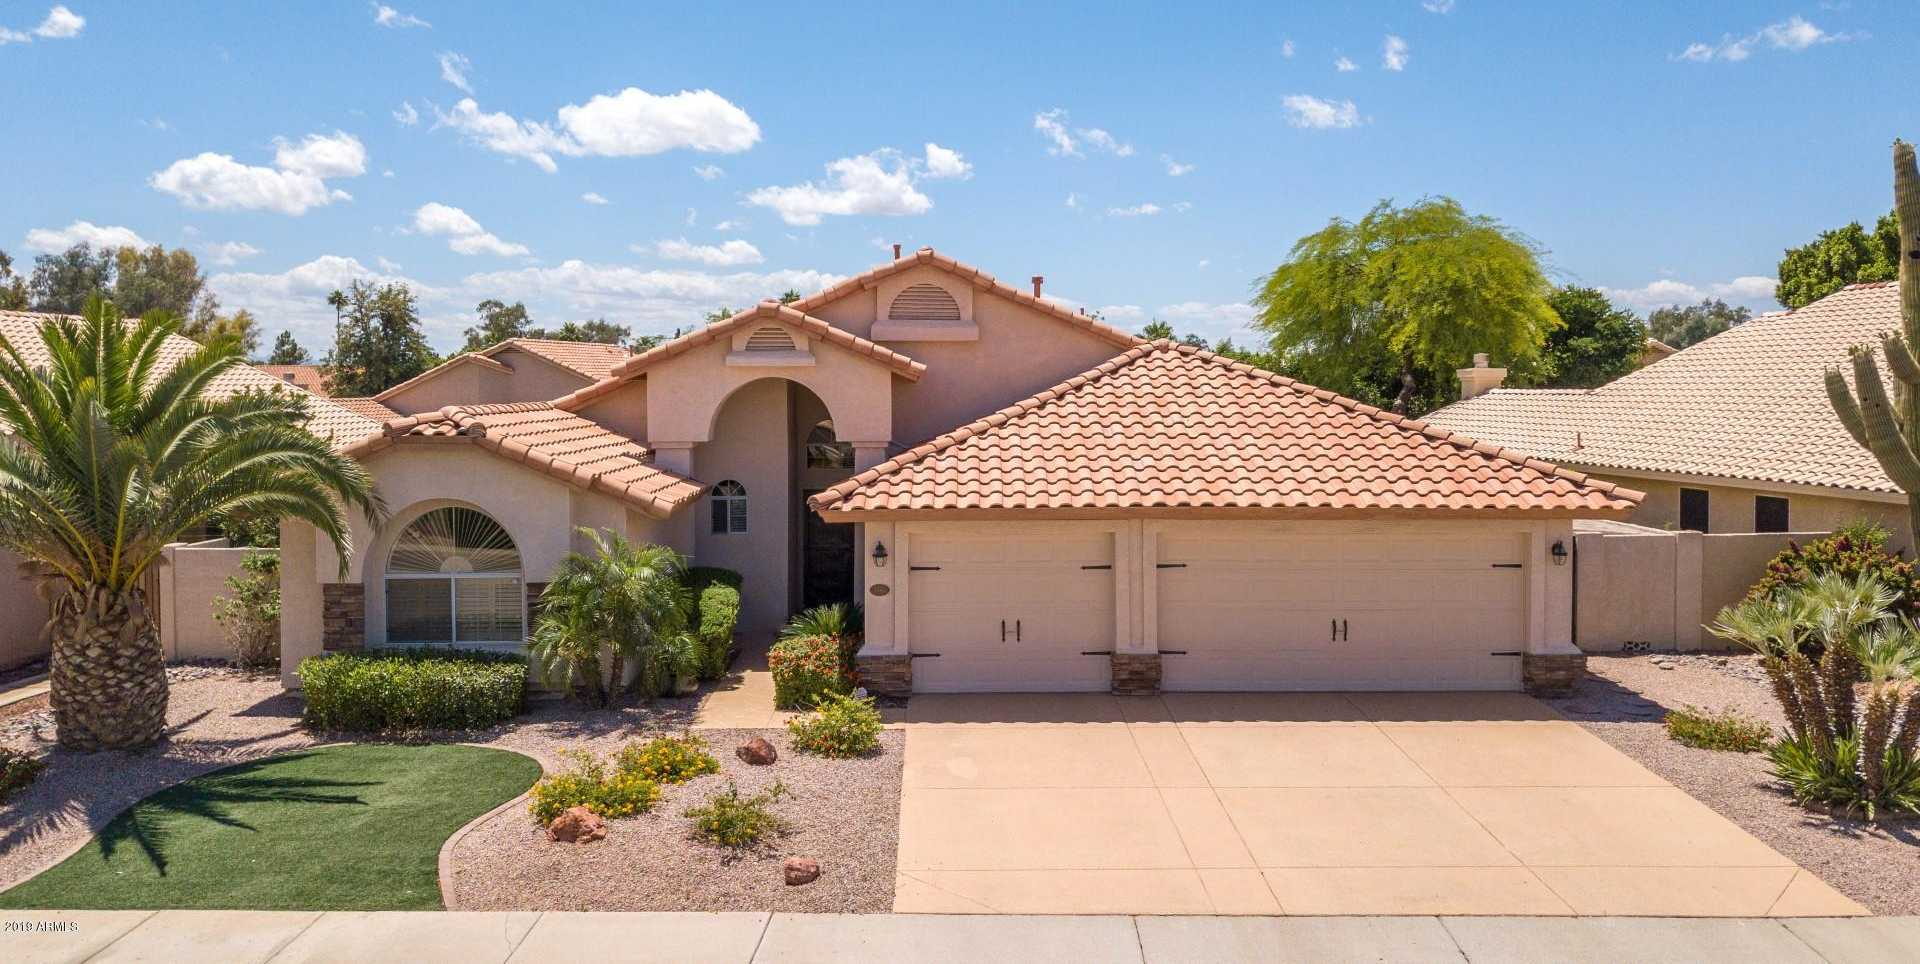 $420,000 - 4Br/2Ba - Home for Sale in Continental At Arrowhead Ranch, Glendale